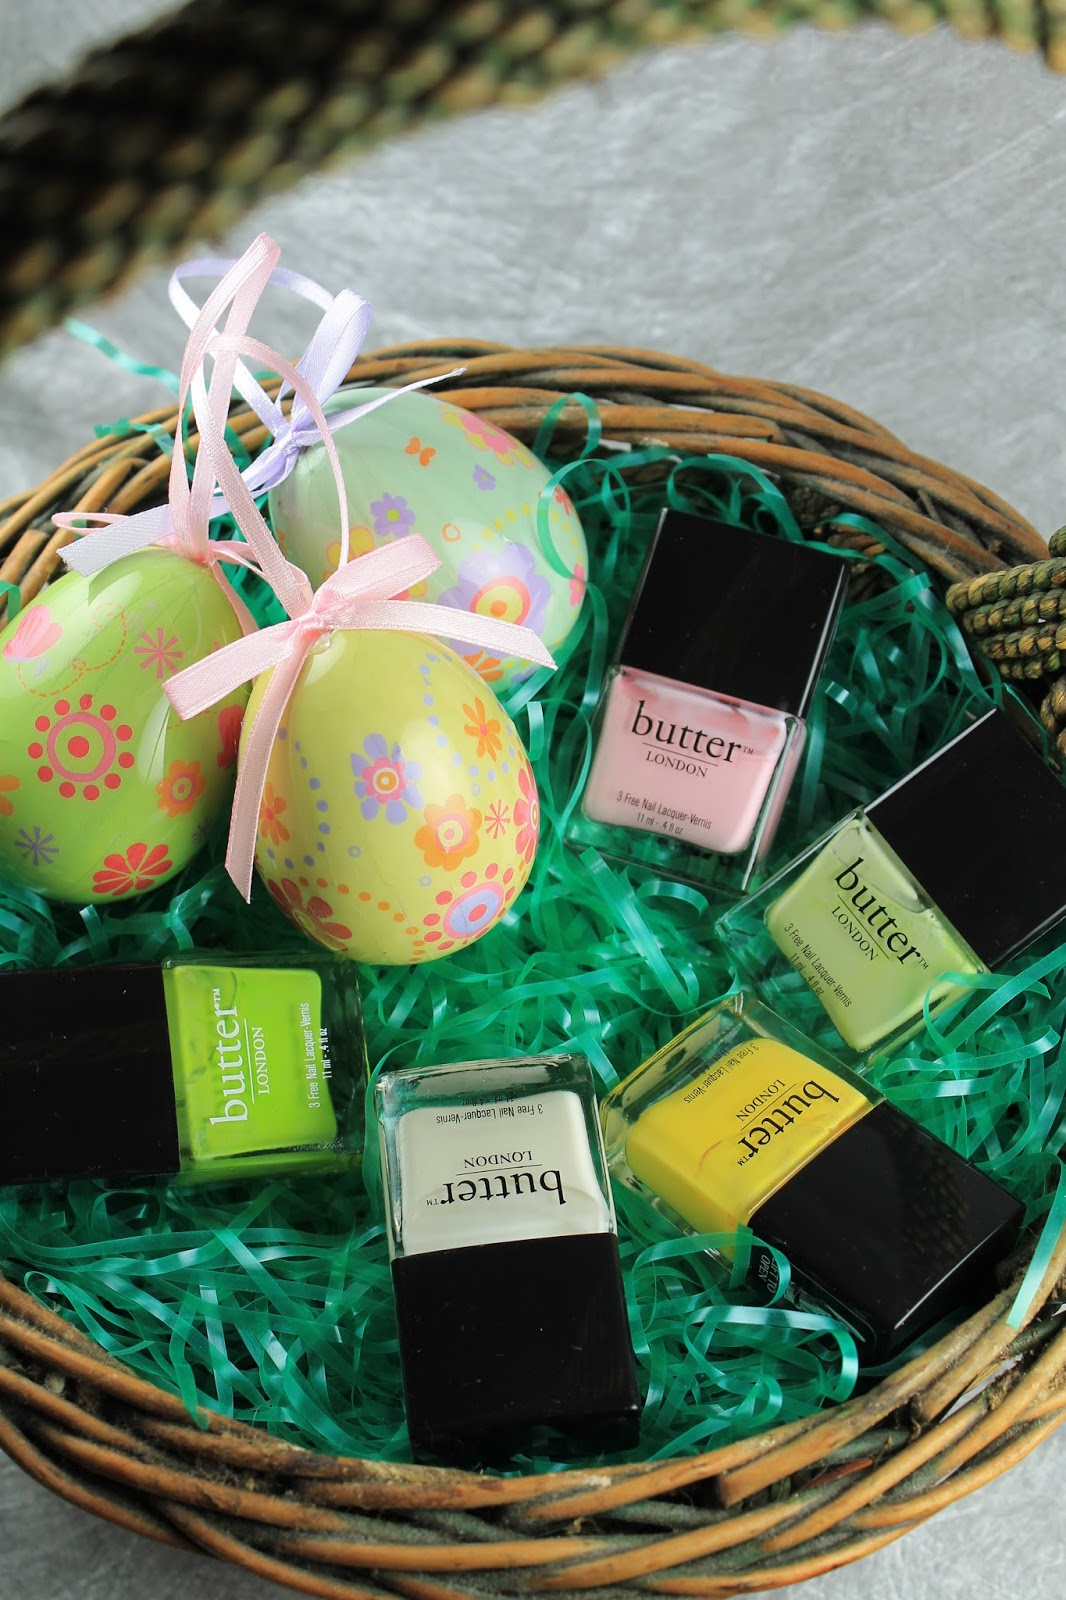 Shine beauty beacon easter basket nail colors transform your shine butter london nail lacquer beauty teddy girl pink bossy boots pale green cheeky chops yellow cream tea white and squatter bright green negle Image collections